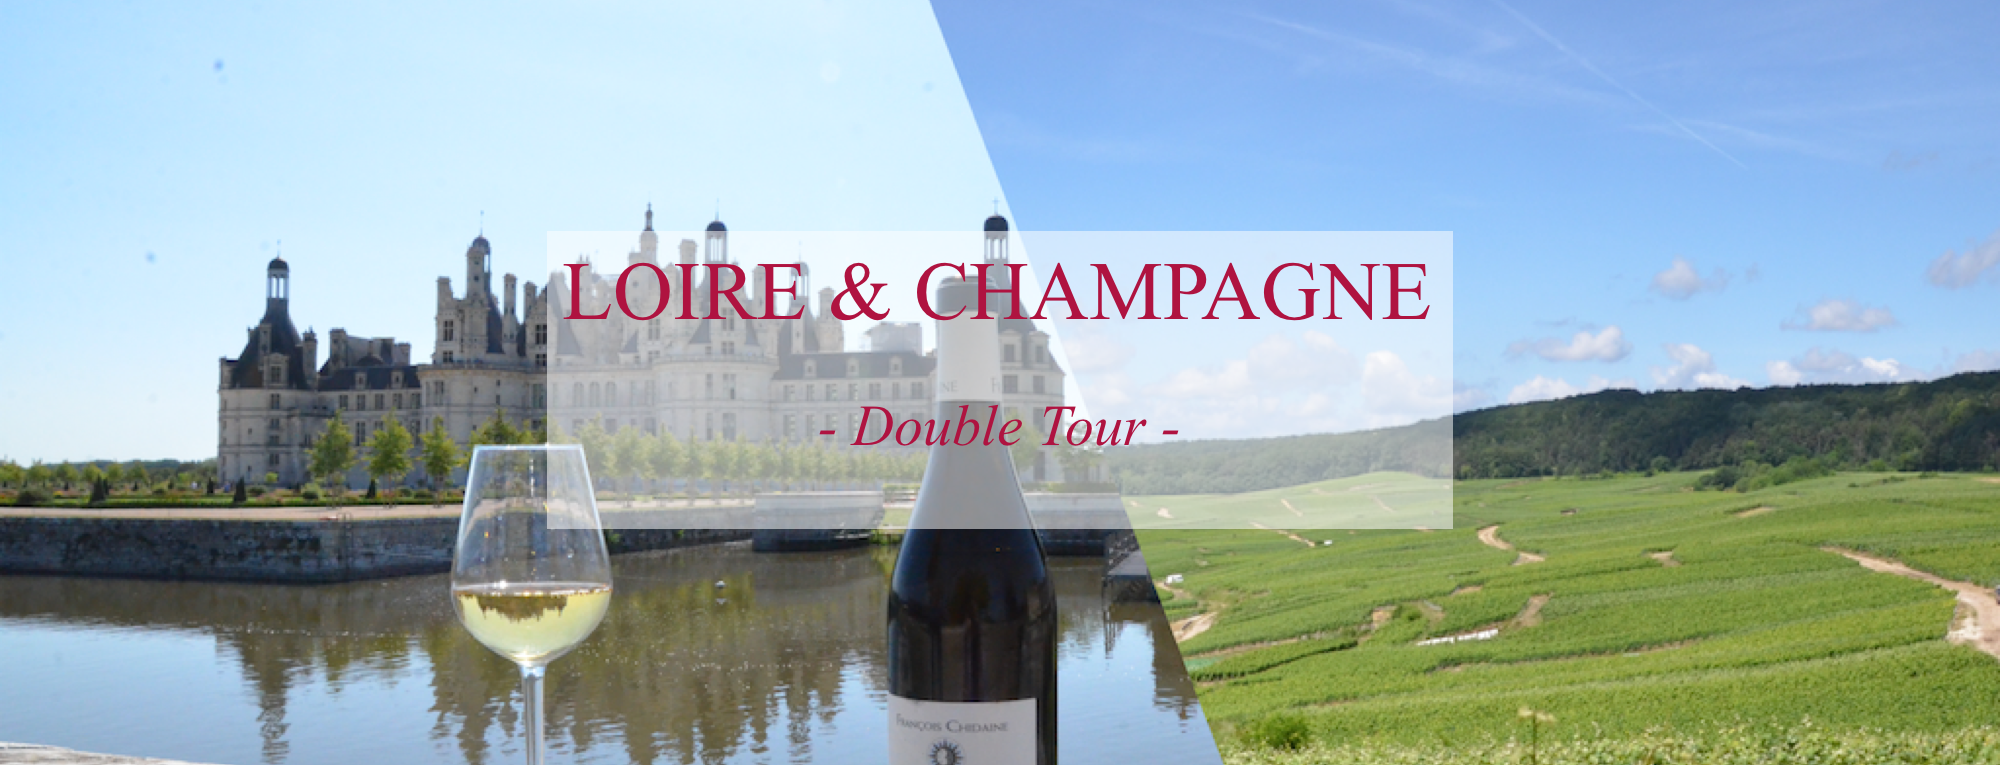 Loire and Champagne double tour